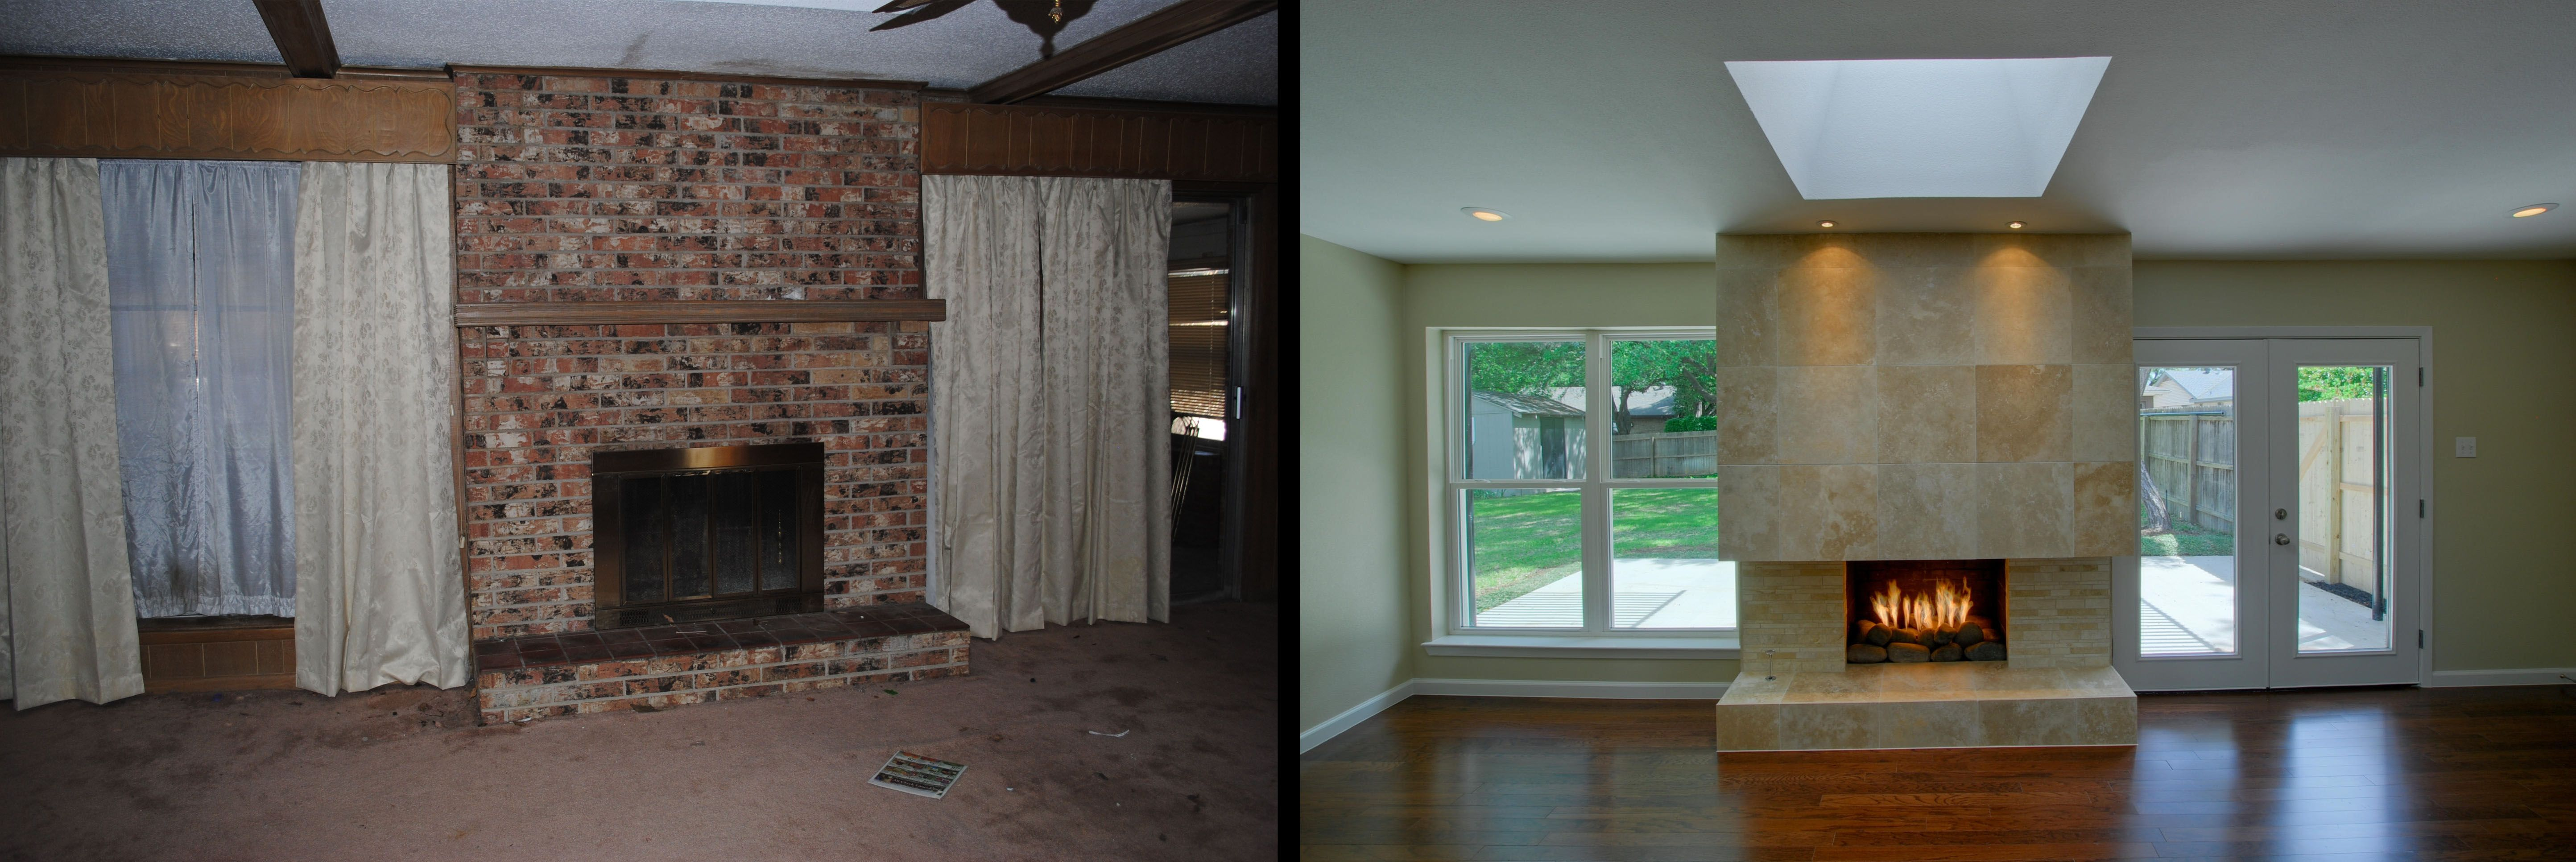 This brick fireplace is very typical of ranch style houses